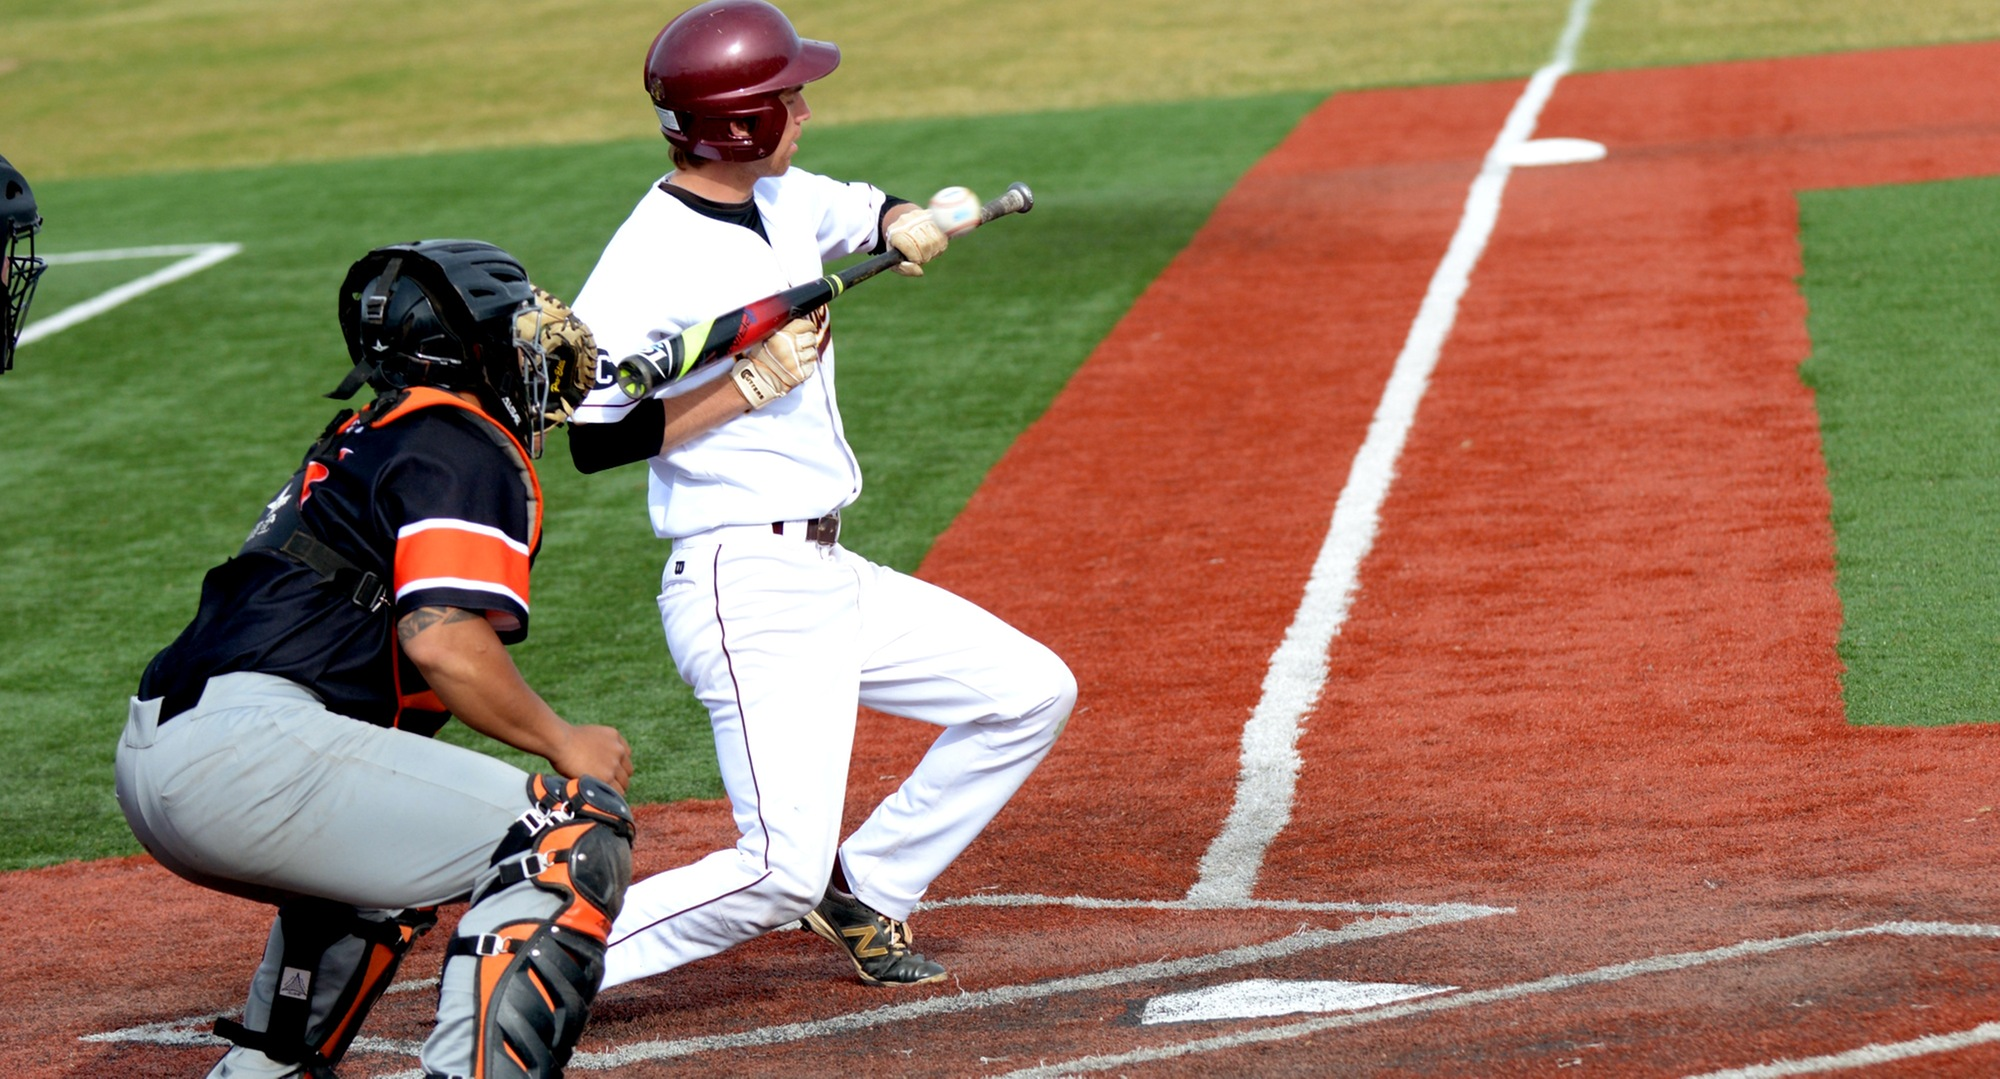 Nate Hoeft ducks and pulls the bat back as he tries to get down a sacrifice bunt during the Cobbers' 10-9 win over Jamestown.